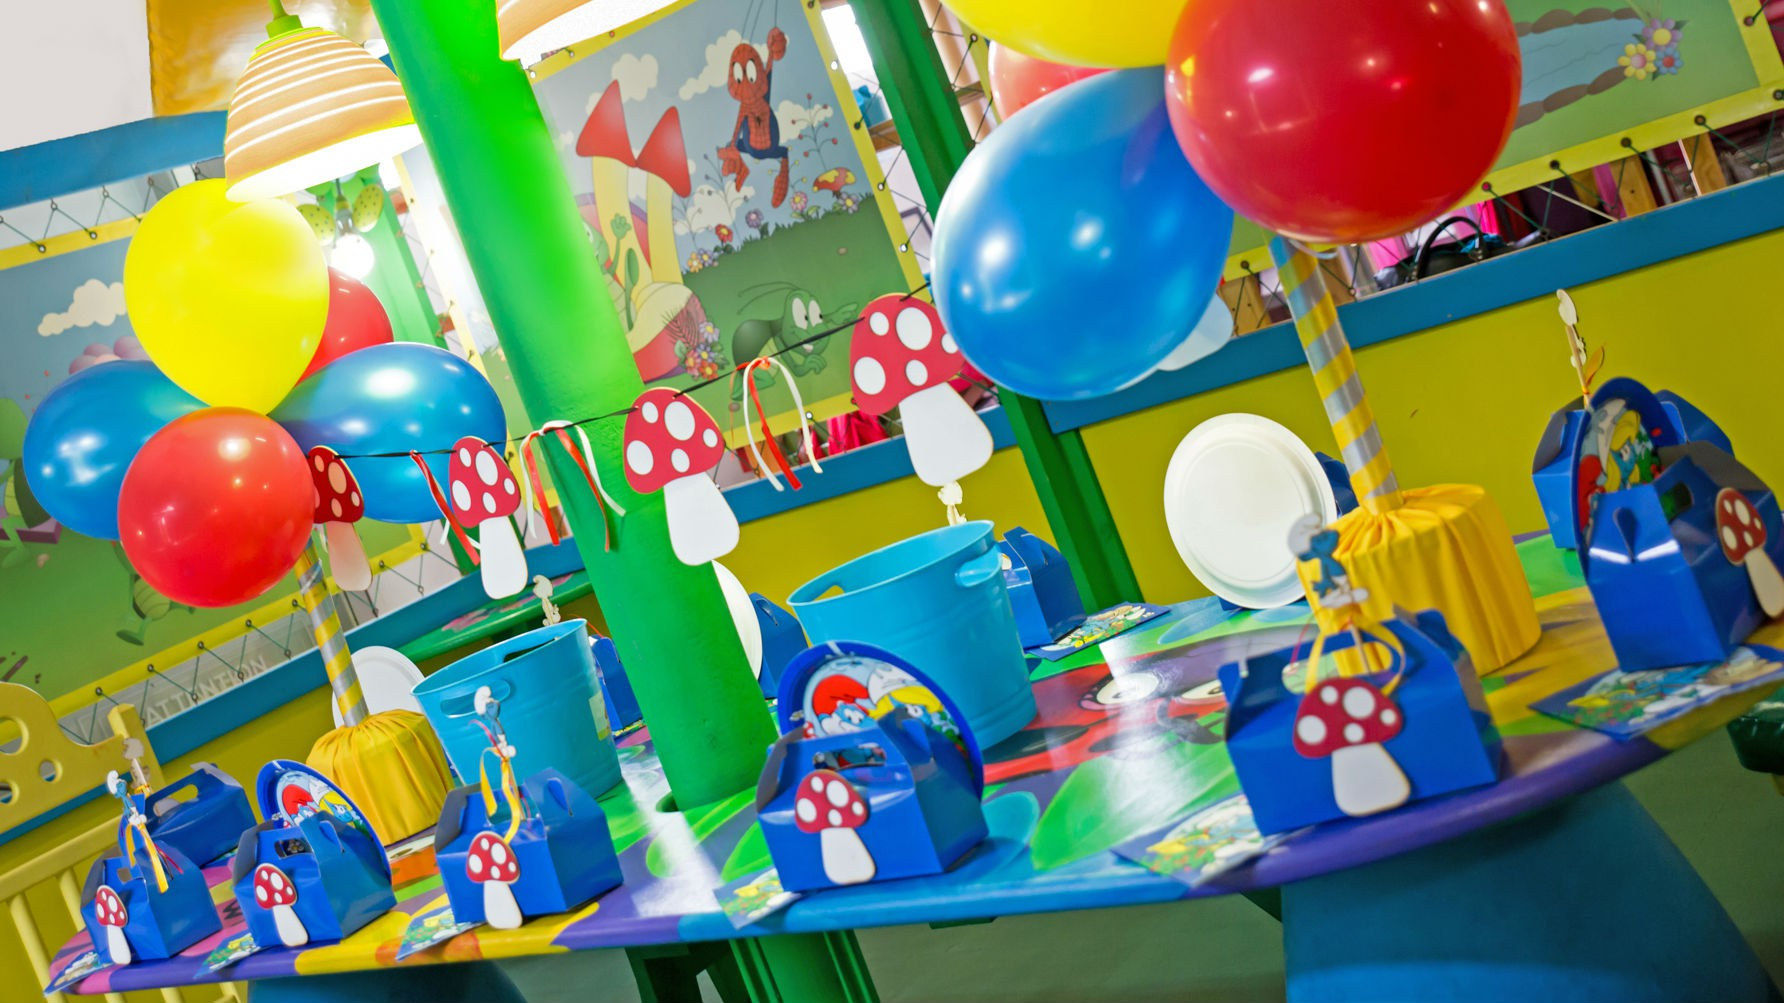 Smurfs Party Setup